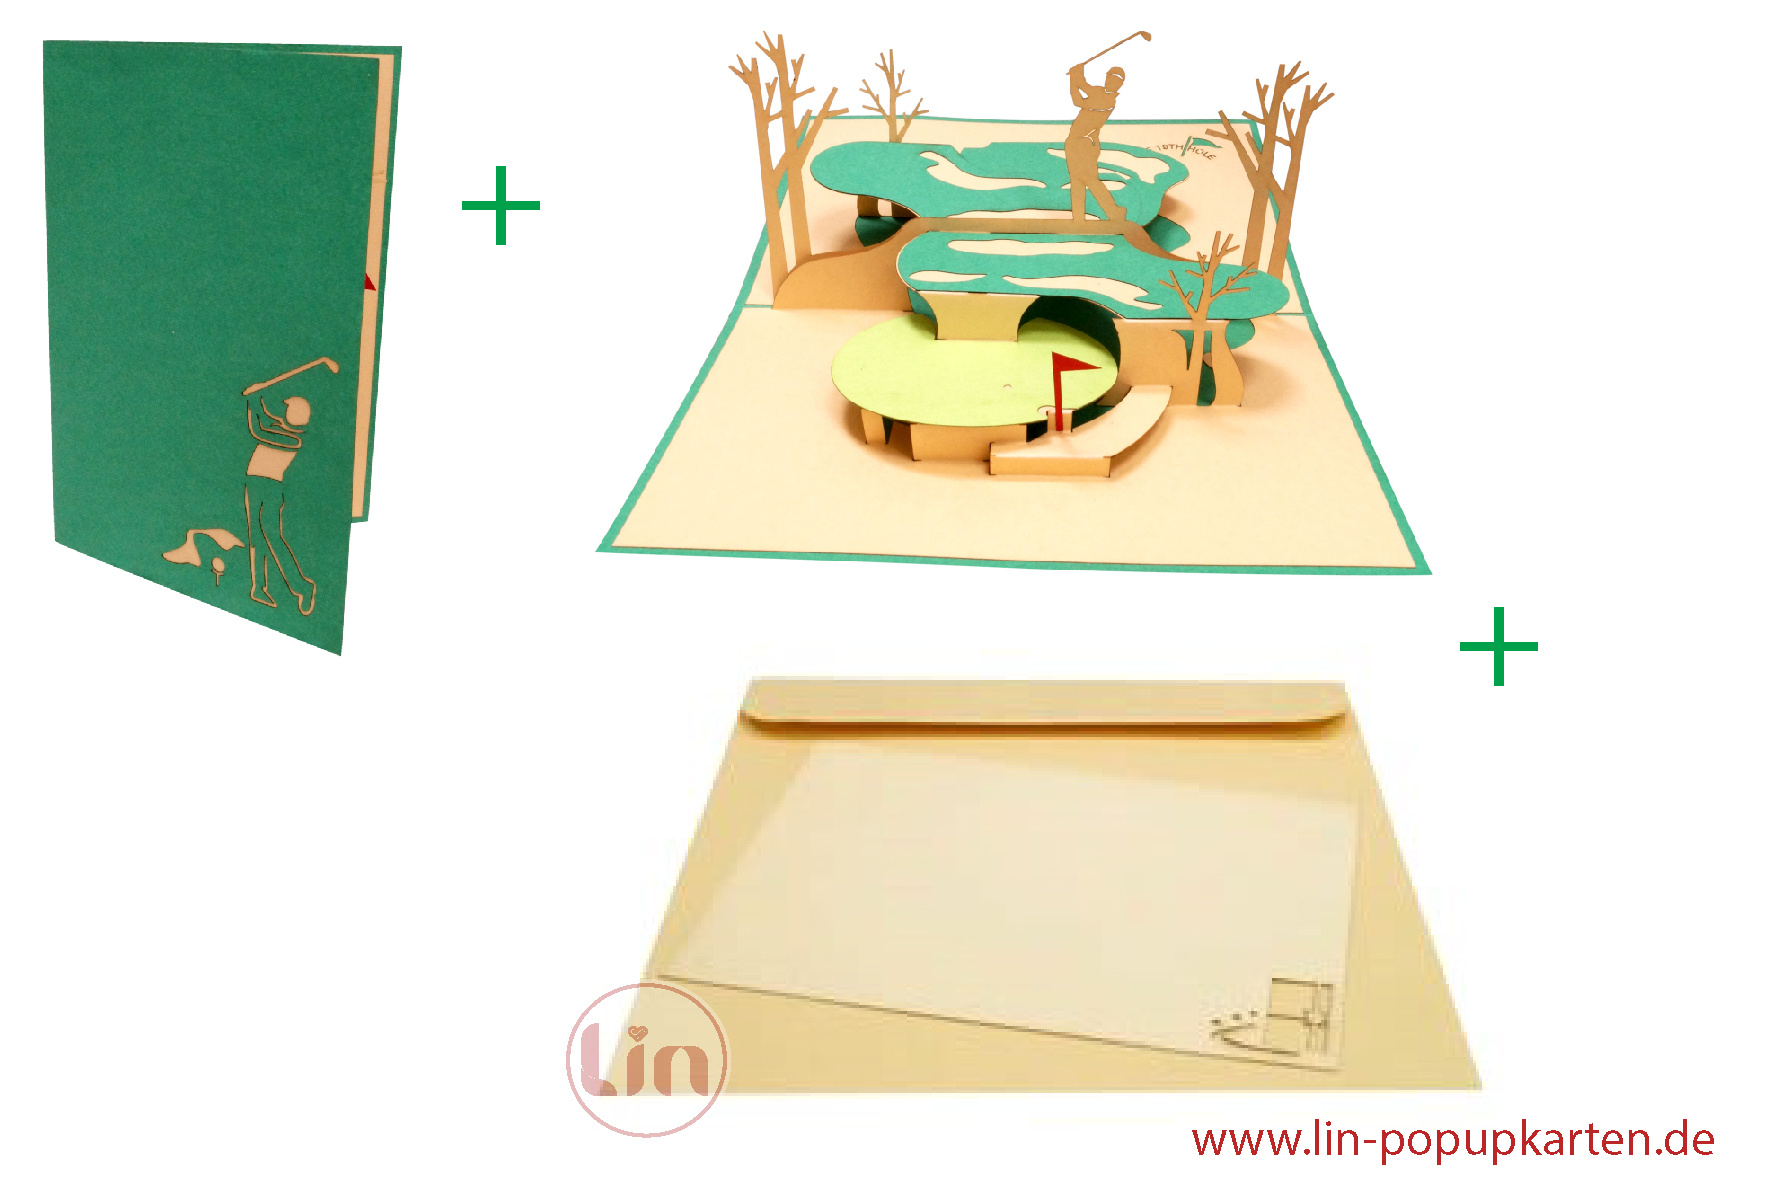 LIN17596, 3D Pop Up Card, Birthday Card, Congratulations, Retirement, Golfing, N350